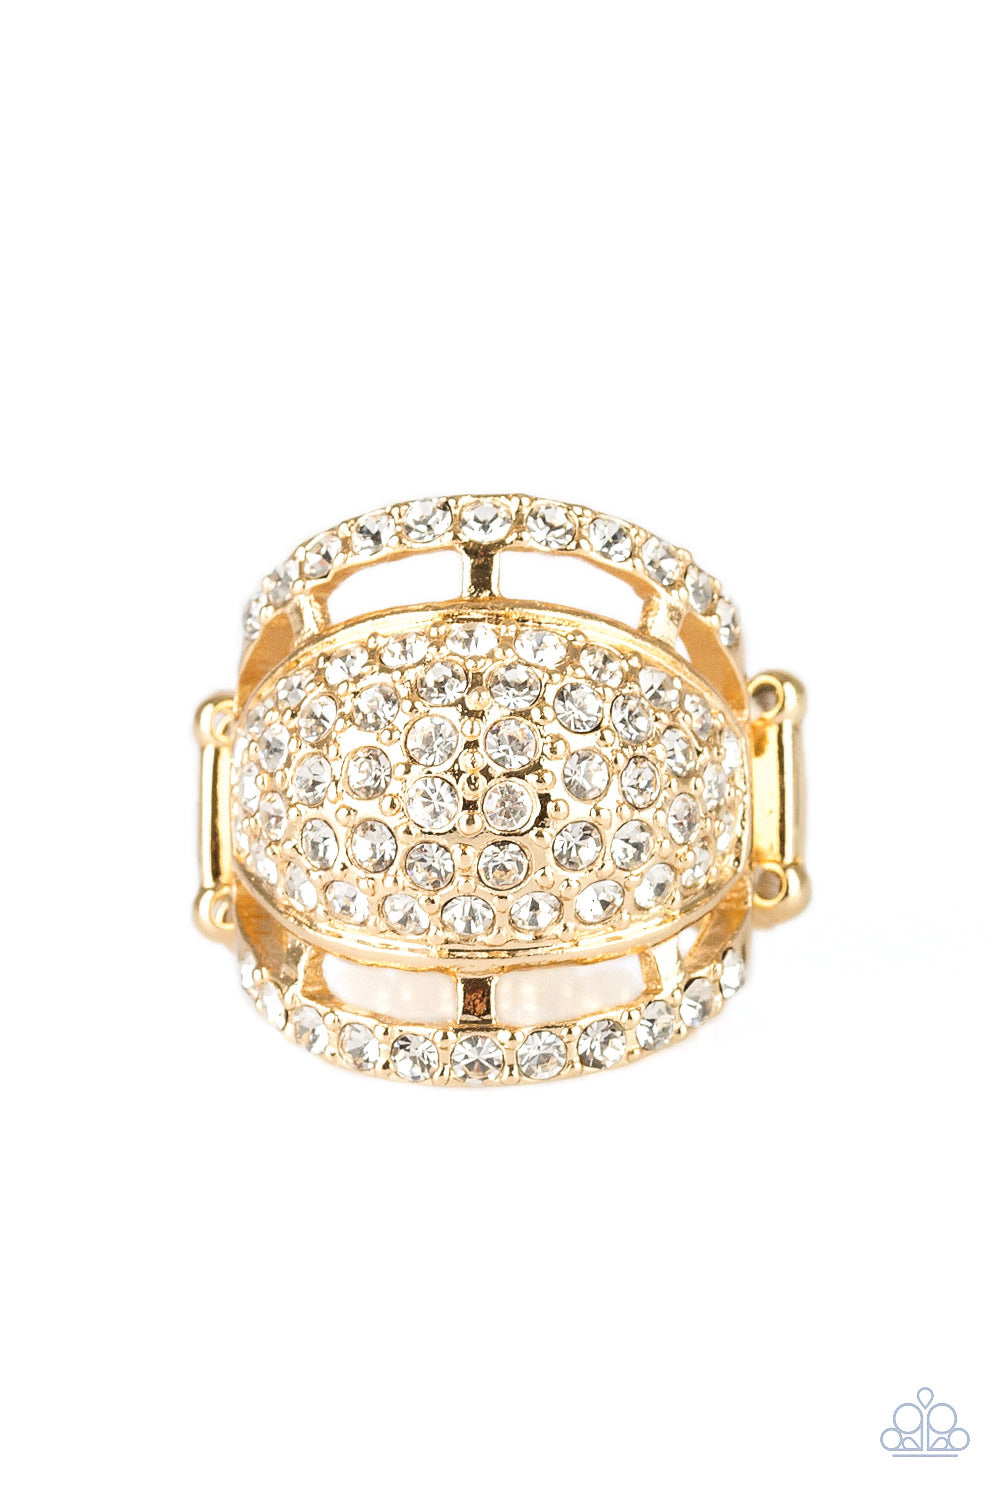 The Seven-FIGURE Itch - Gold Ring - Paparazzi Accessories